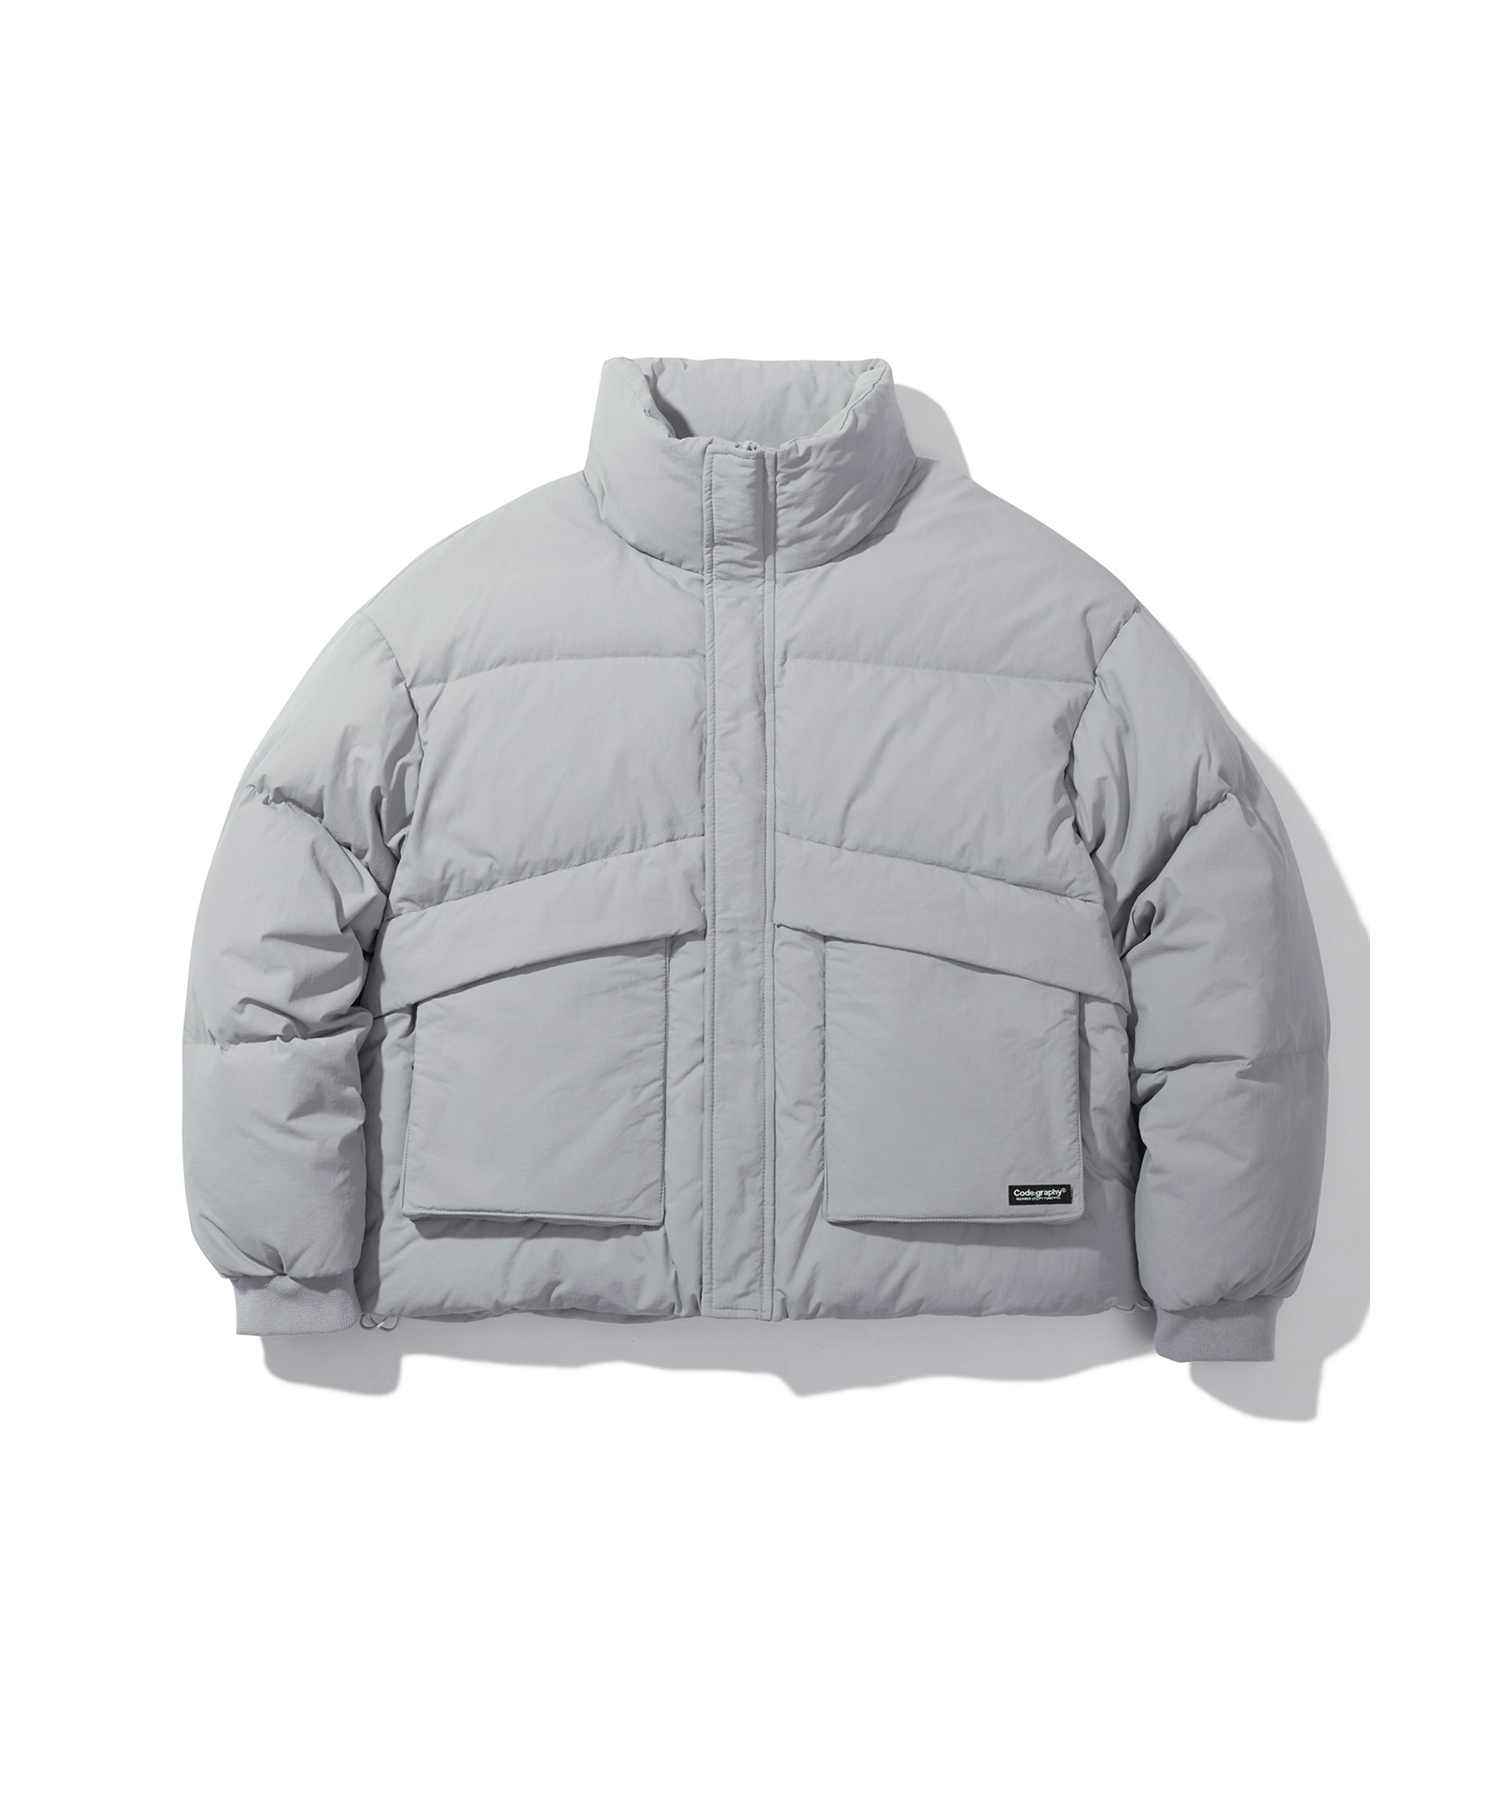 [Renewal]UTILITY DUCK DOWN SHORT PUFFA - SBL